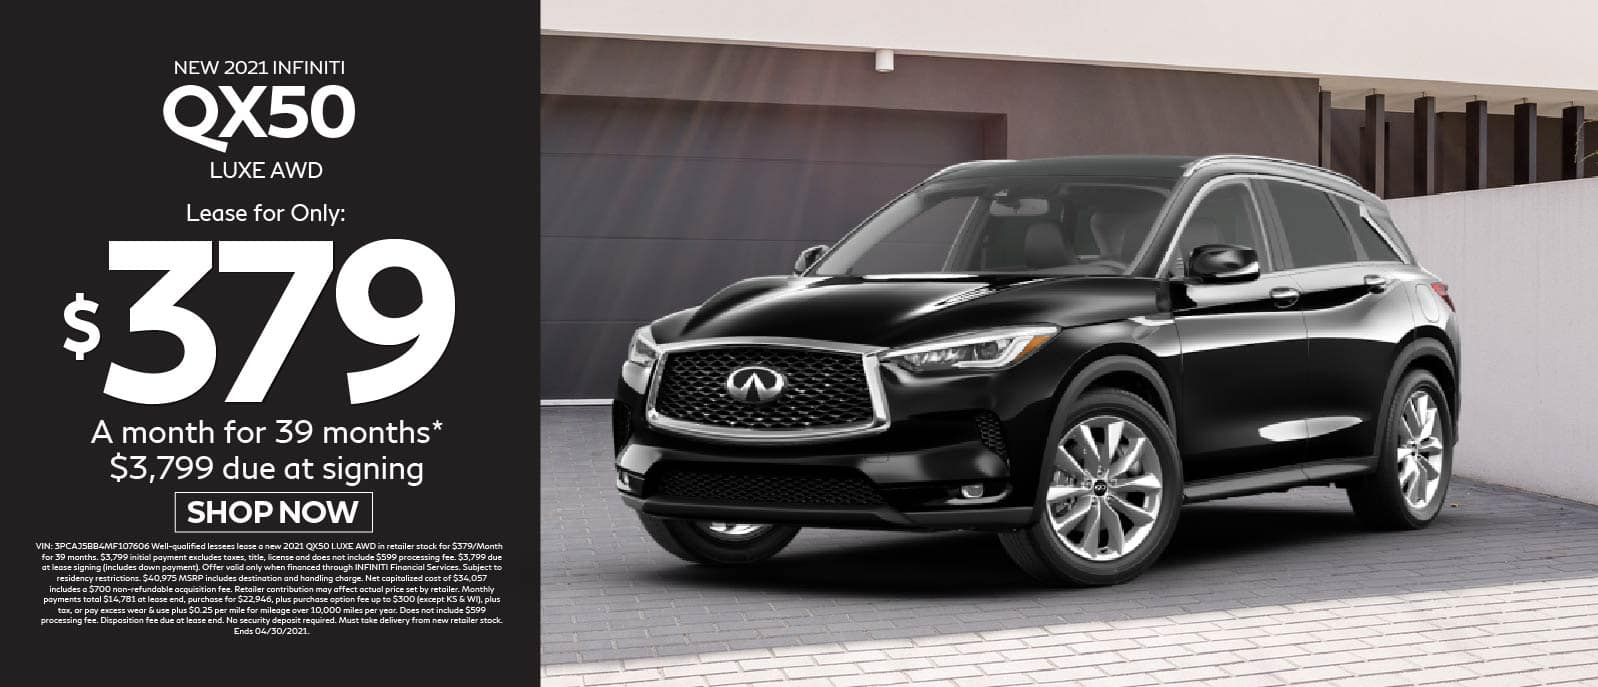 2021 QX50 Luxe AWD lease for only $379 Per month for 39 months $3,799 due at signing. Shop now.